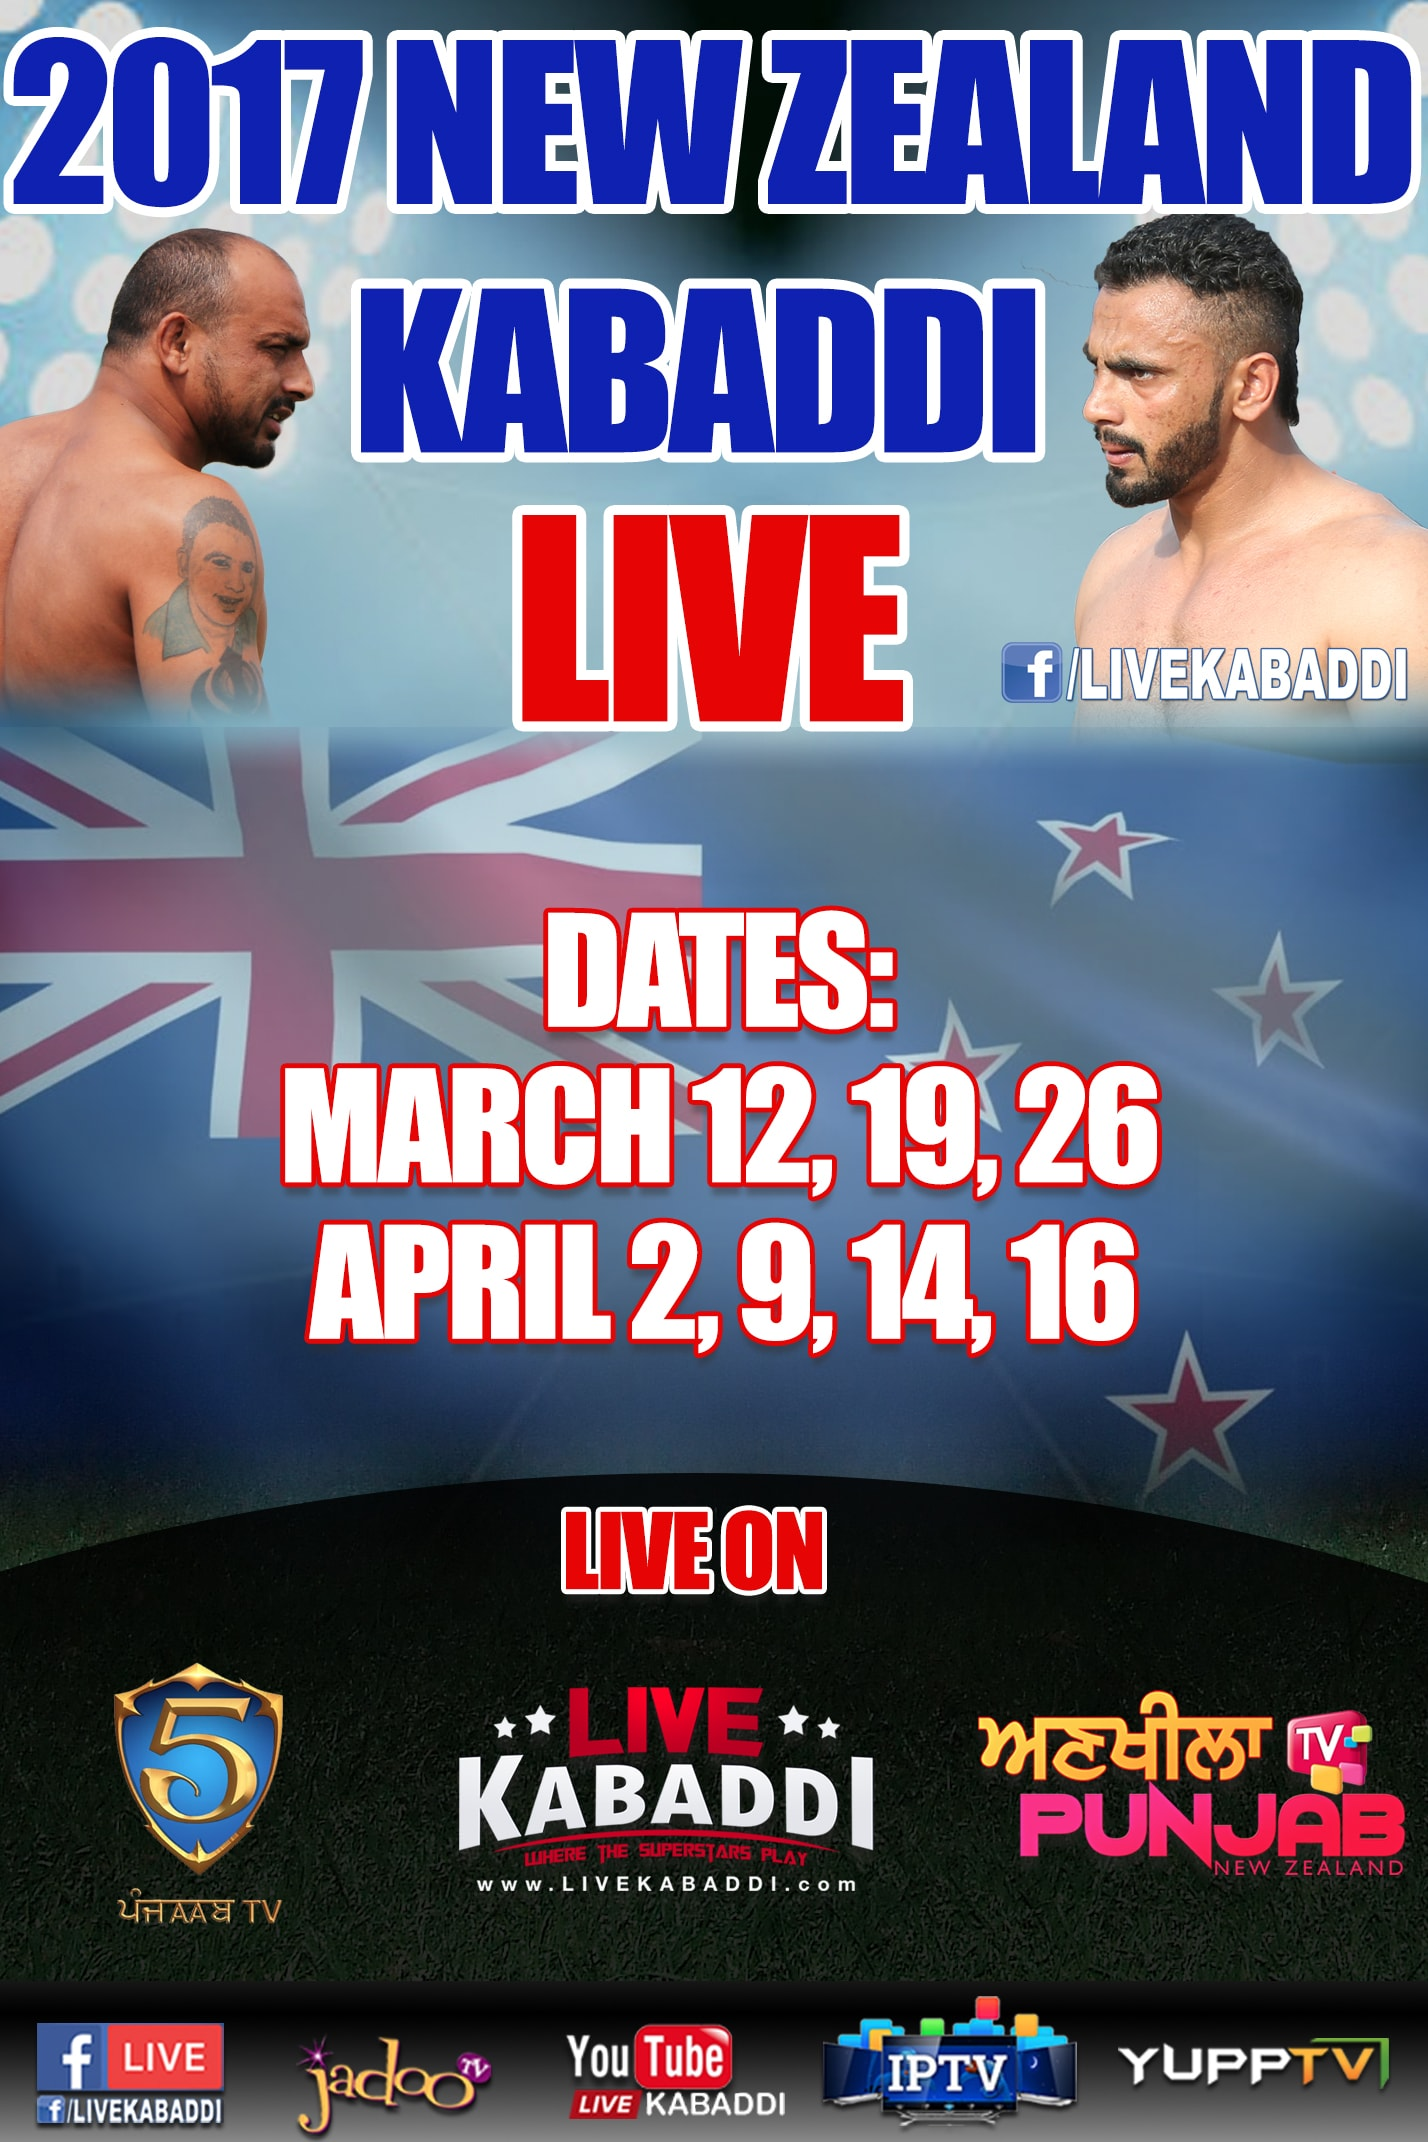 new-zealand-kabaddi-2017